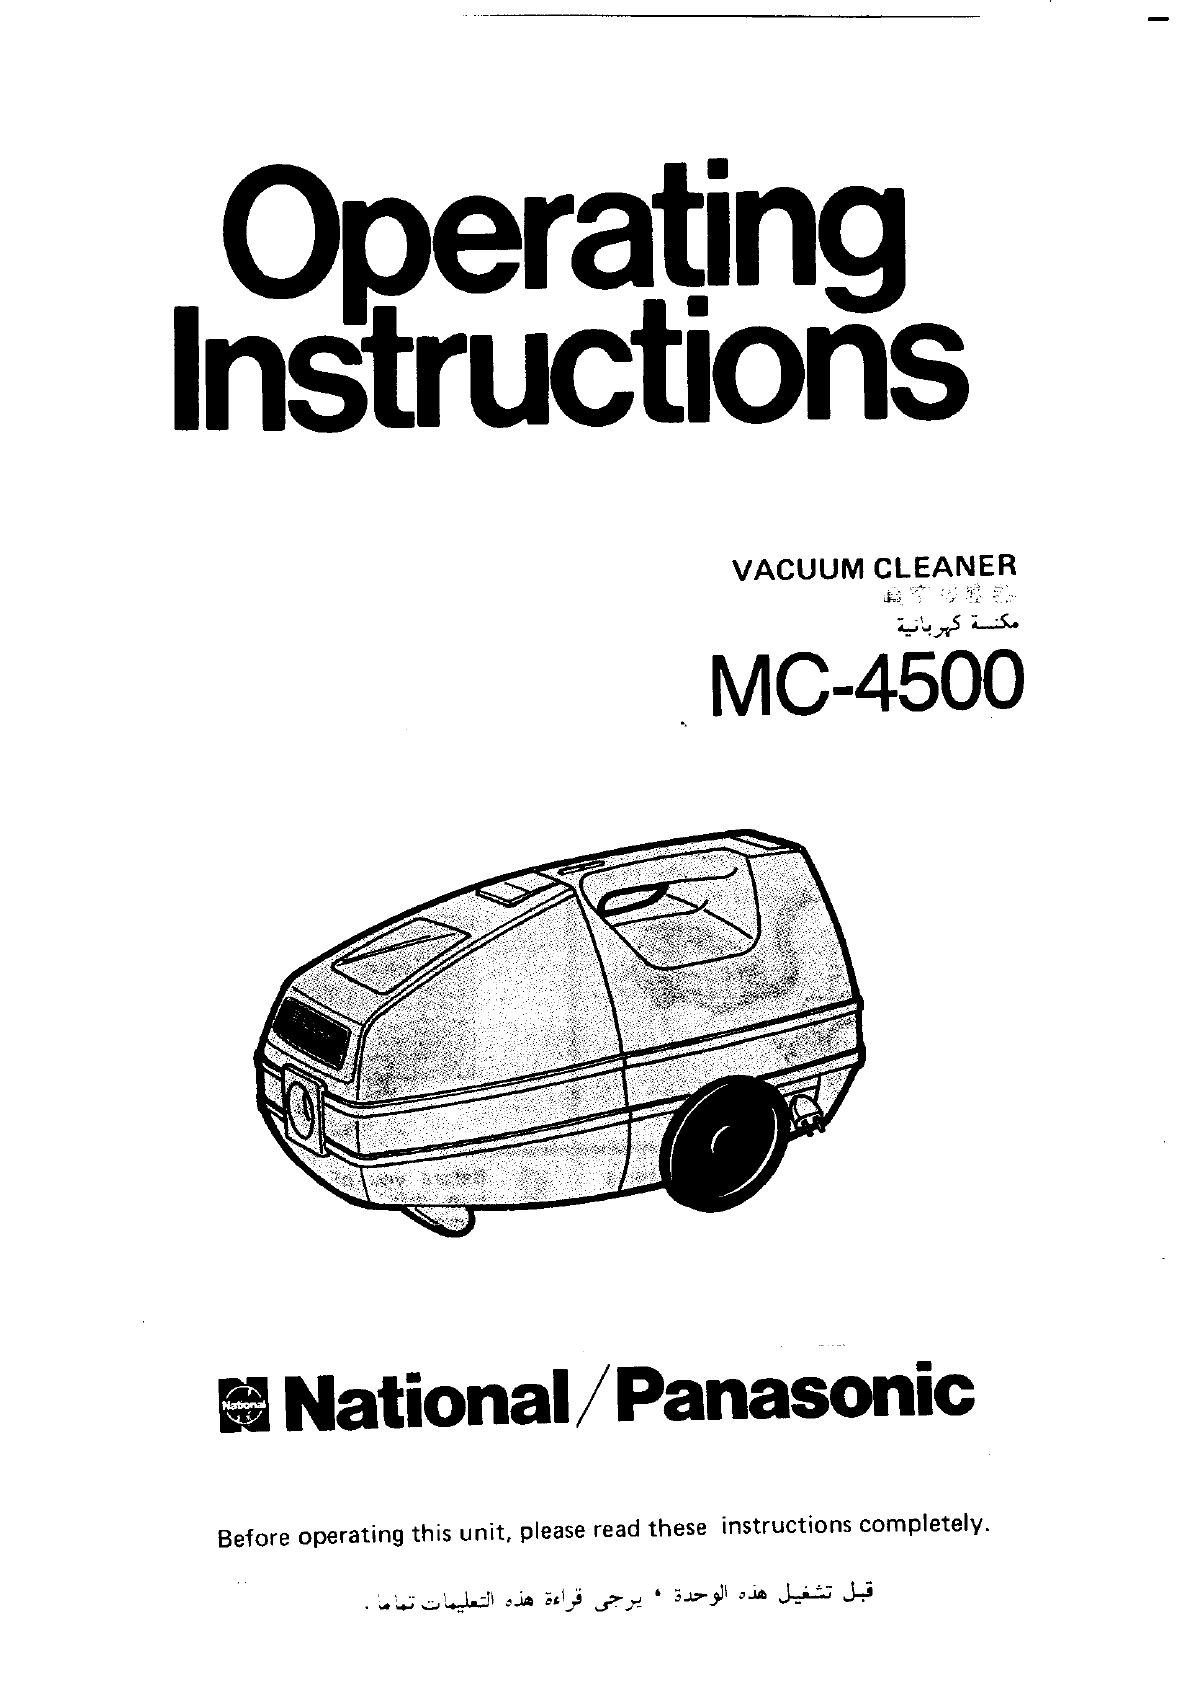 Panasonic Vacuum Cleaner MC-4500 User Guide